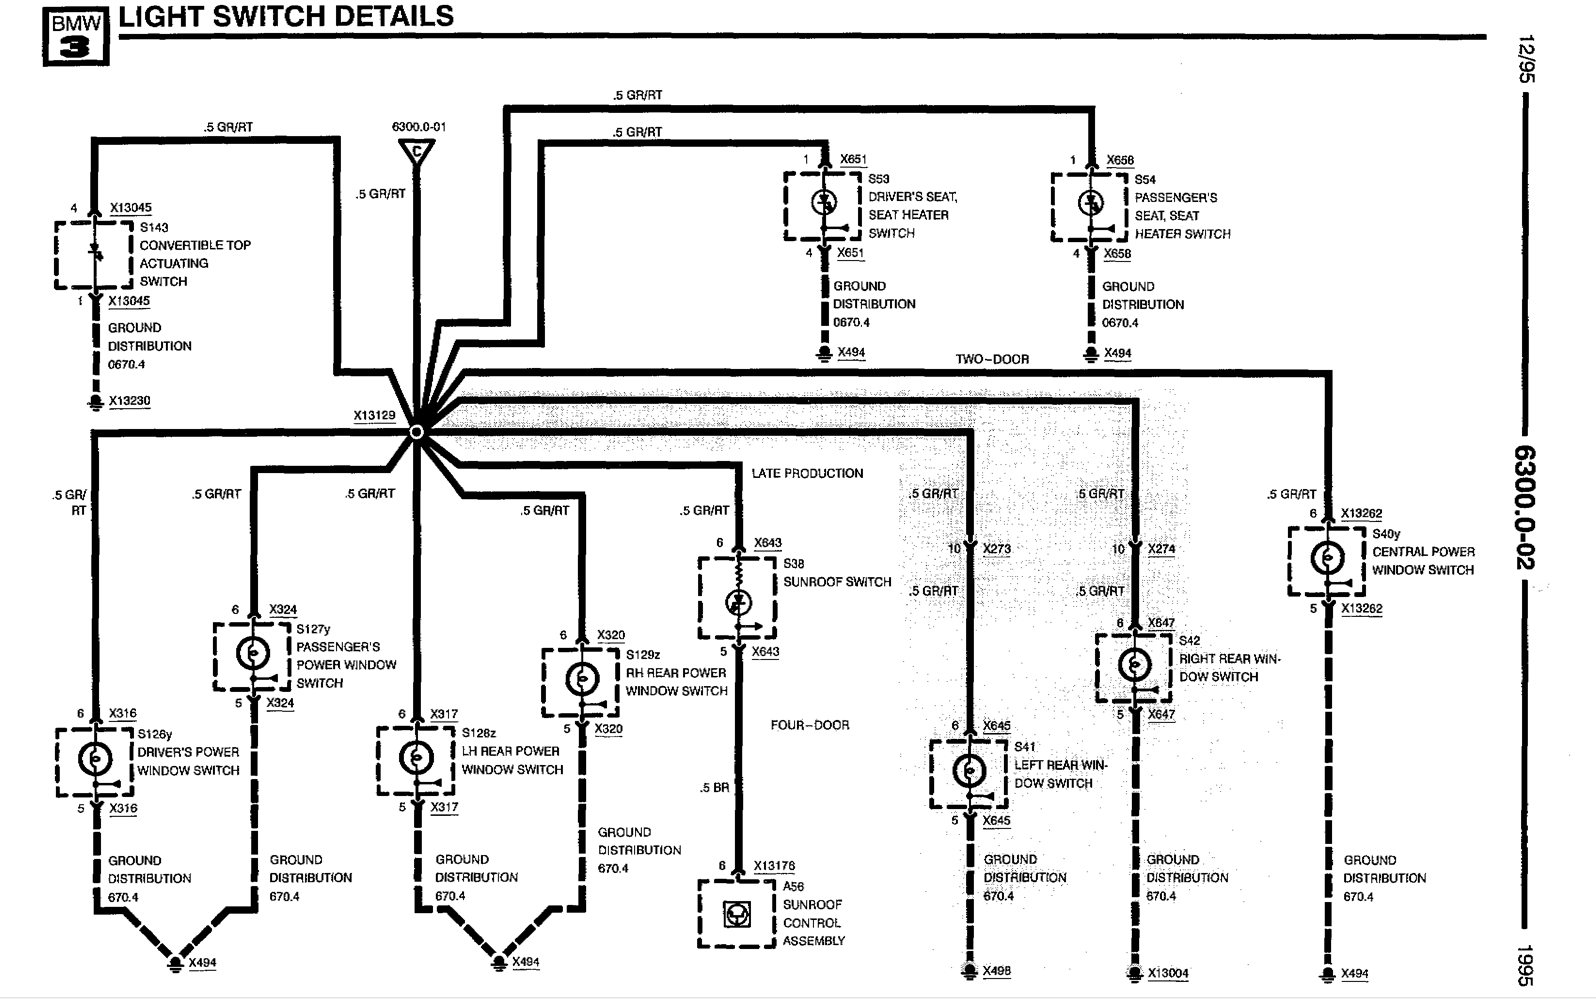 bmw m50 wiring diagram kicker cvr 15 e36 diagrams e46 harness great installation of todays rh 5 16 10 1813weddingbarn com ignition